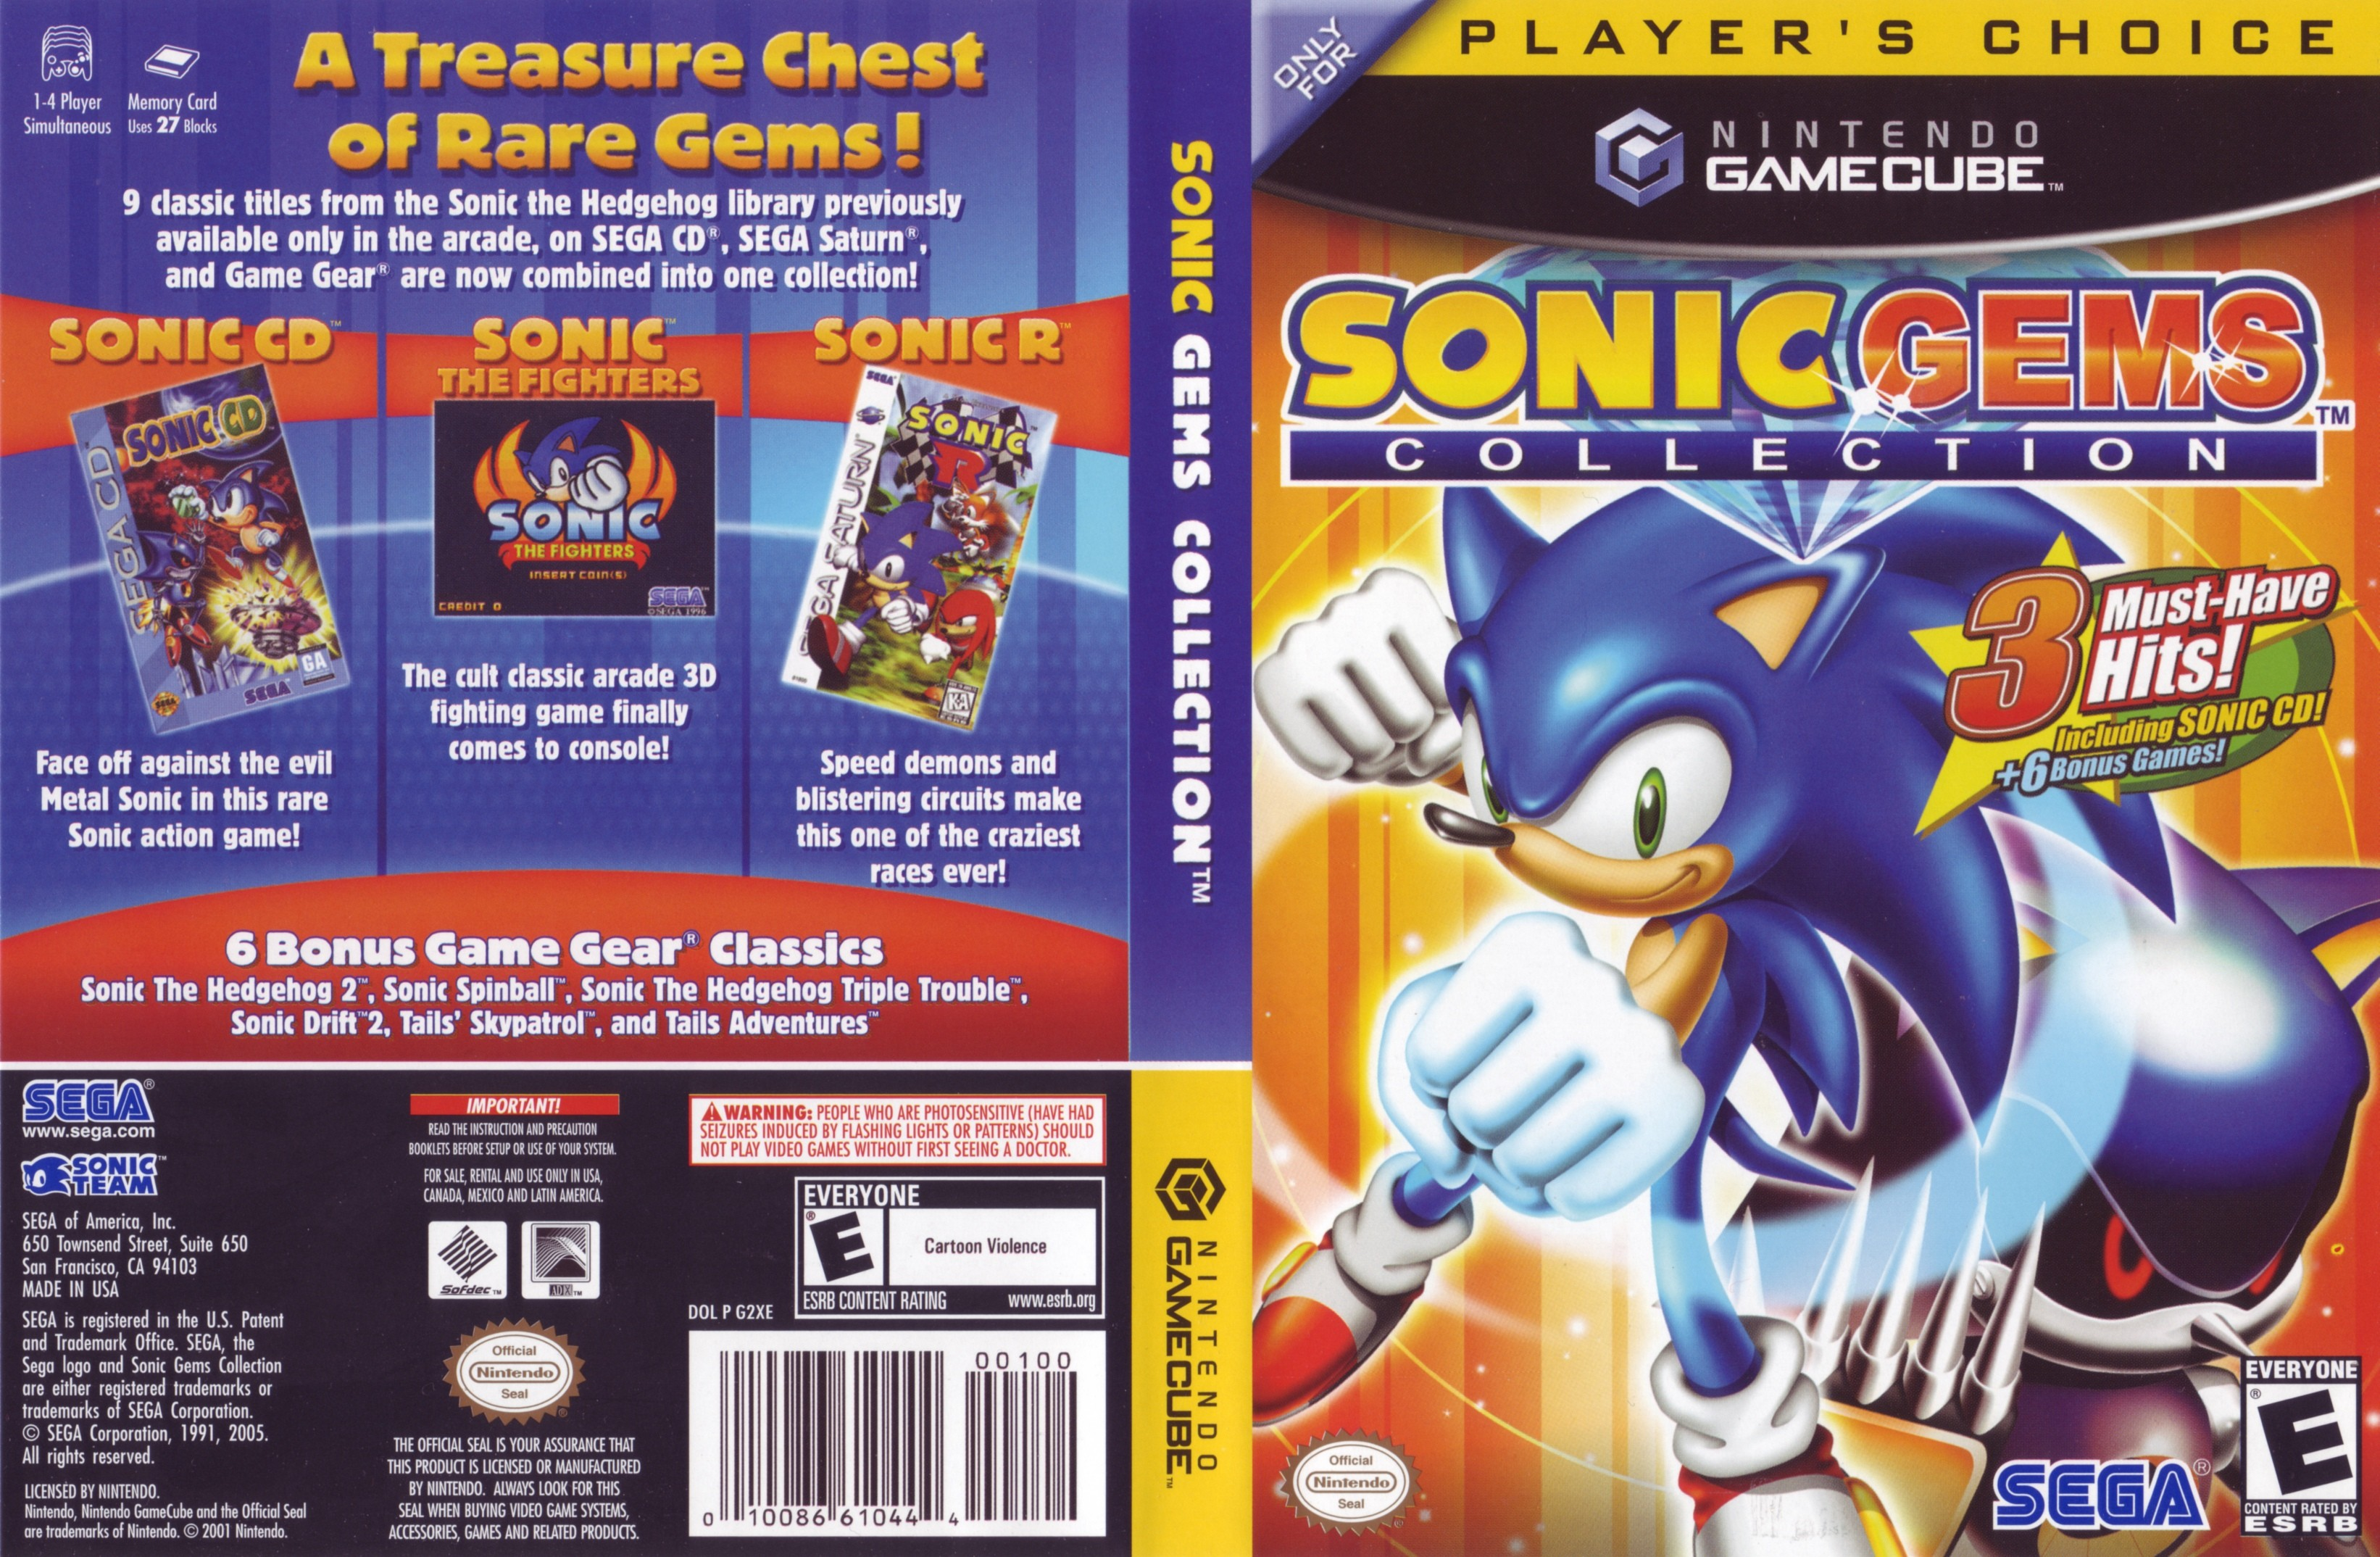 Sonic gems collection gc iso : postradoo